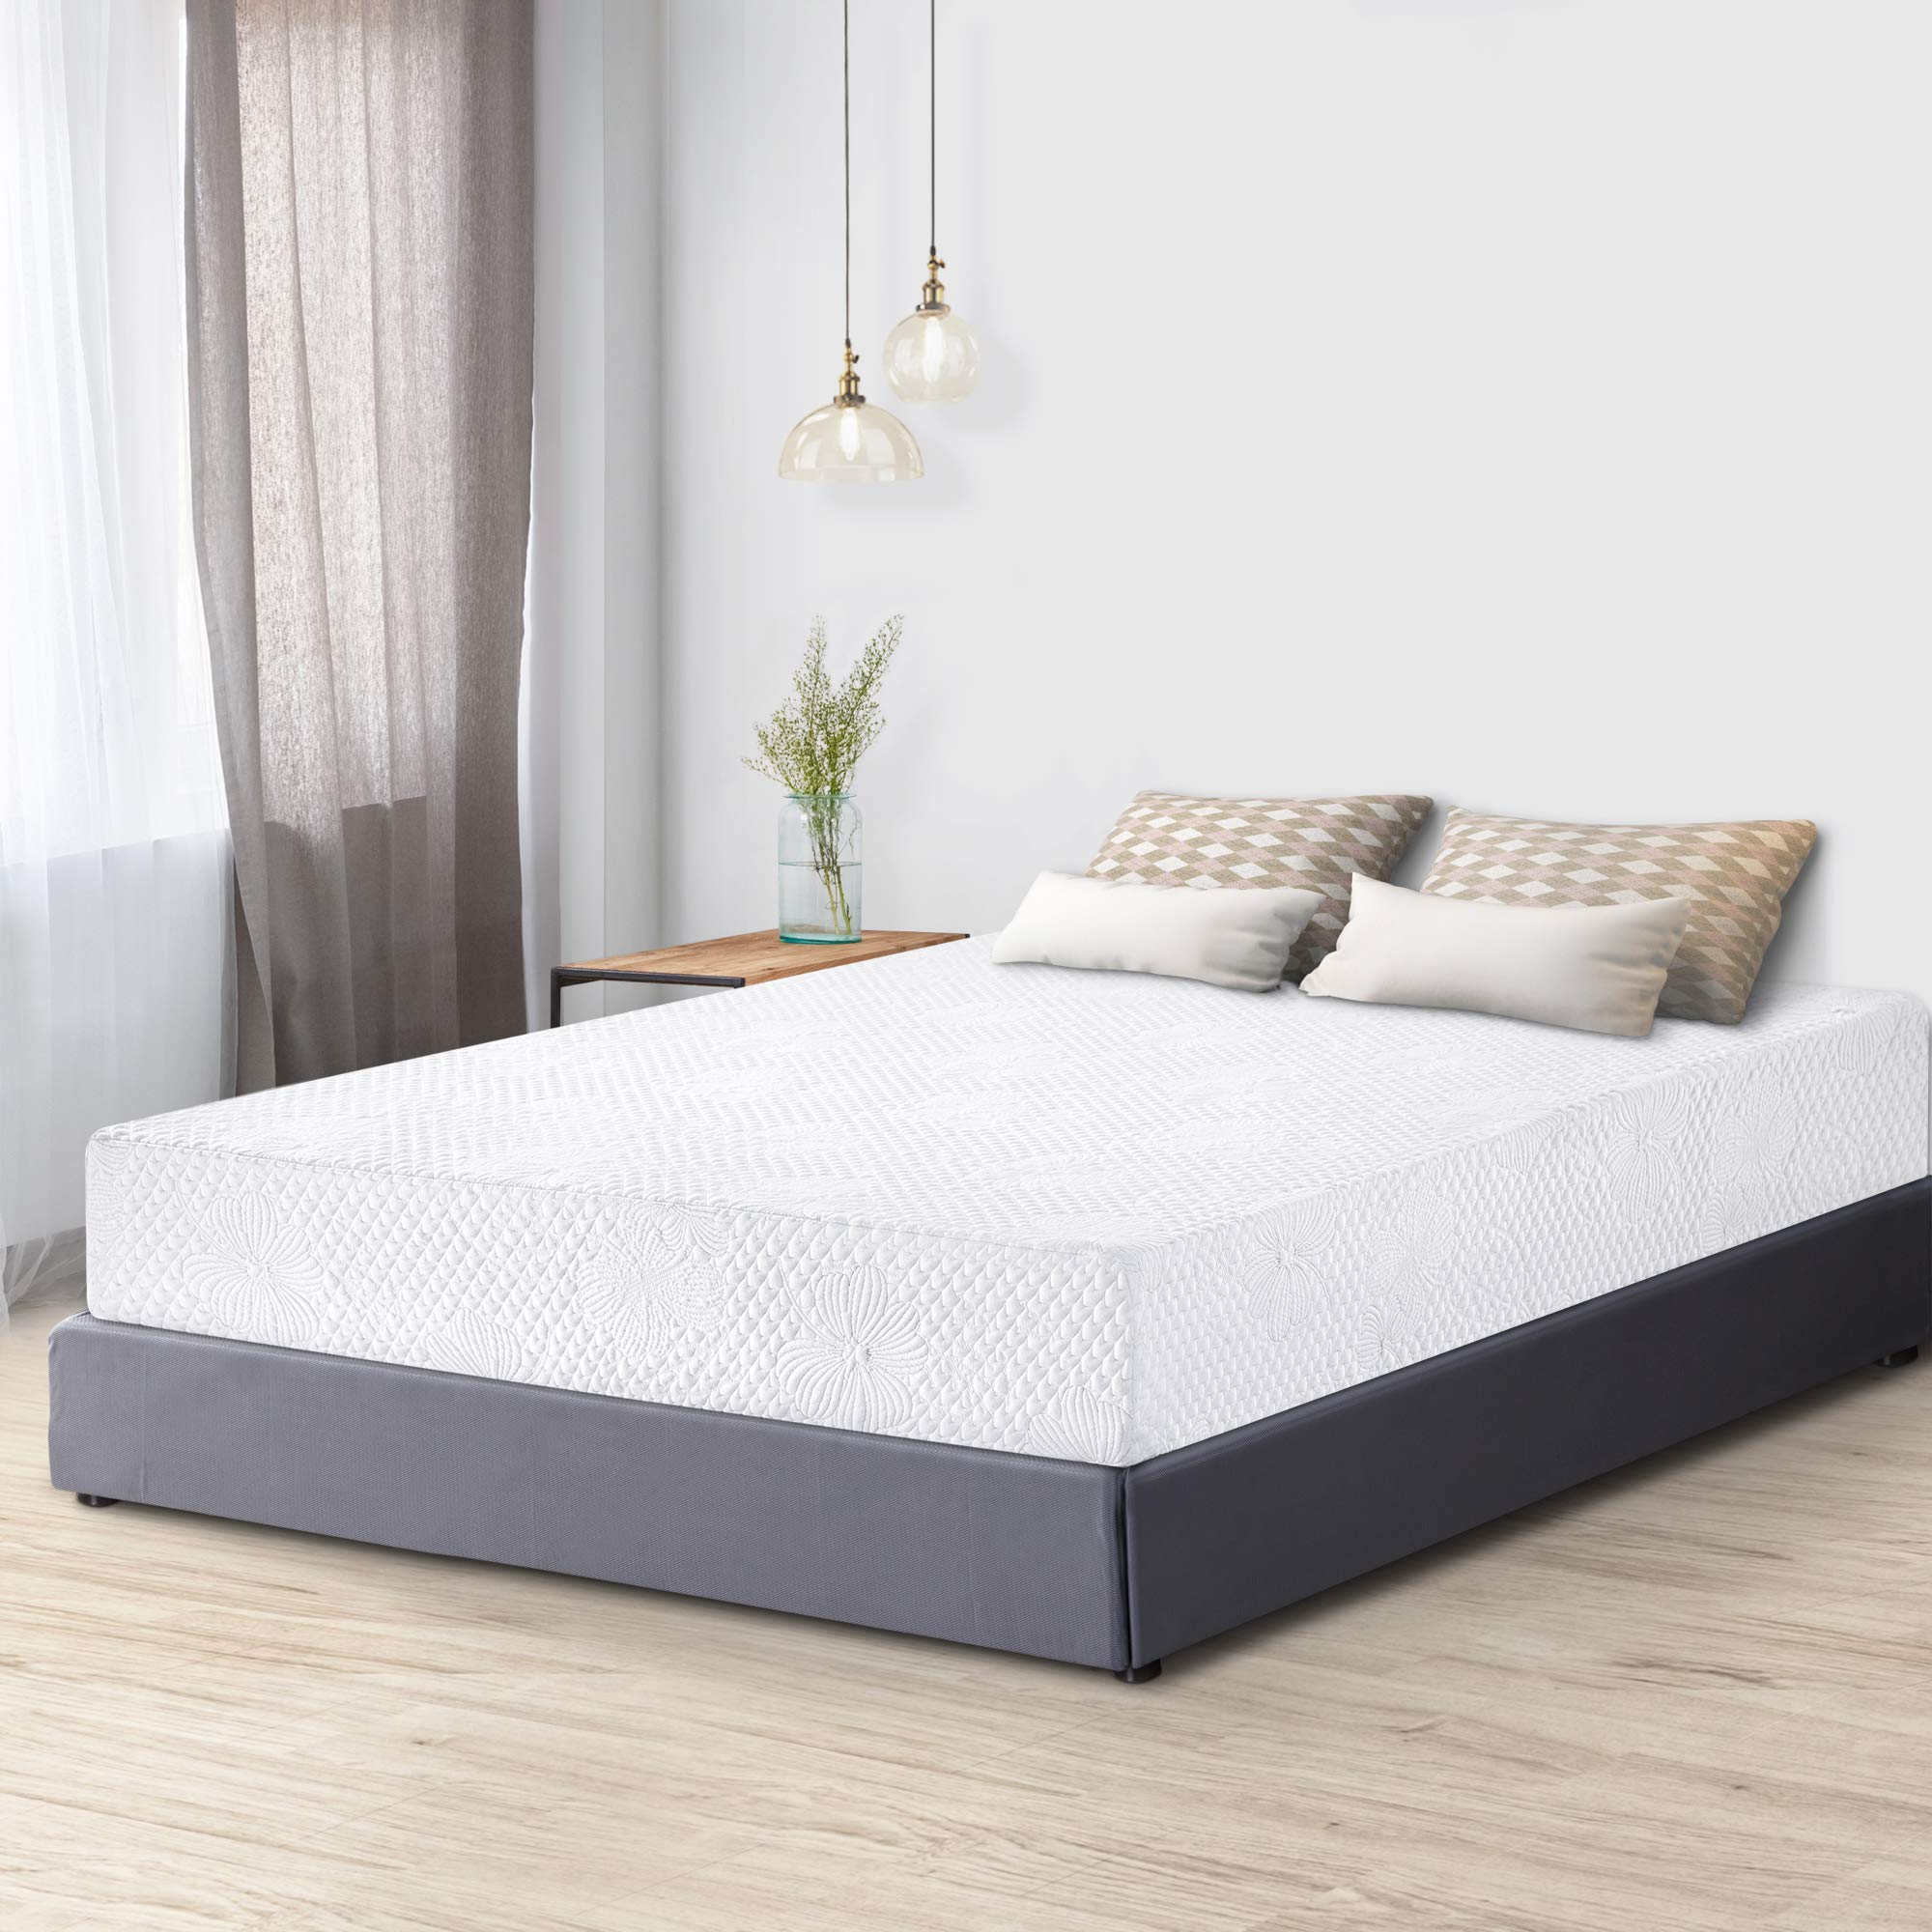 PrimaSleep Premium Cool Gel Multi Layered Memory Foam Bed Mattress, Full, 8 Inch